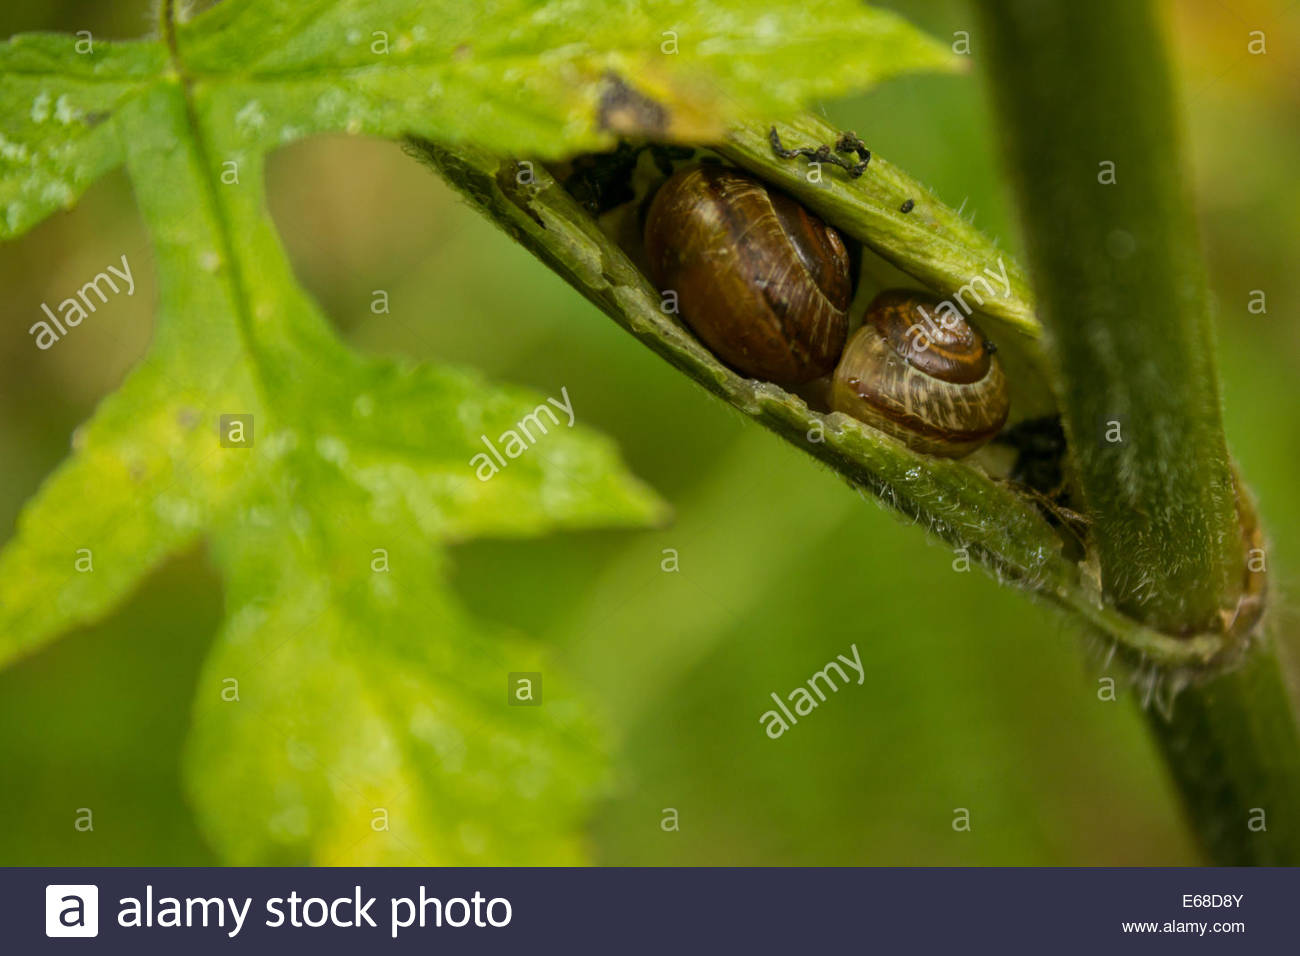 Common Garden Snails Helix aspersa, two individuals shelter in the stem of a plant. Peak District, October. - Stock Image